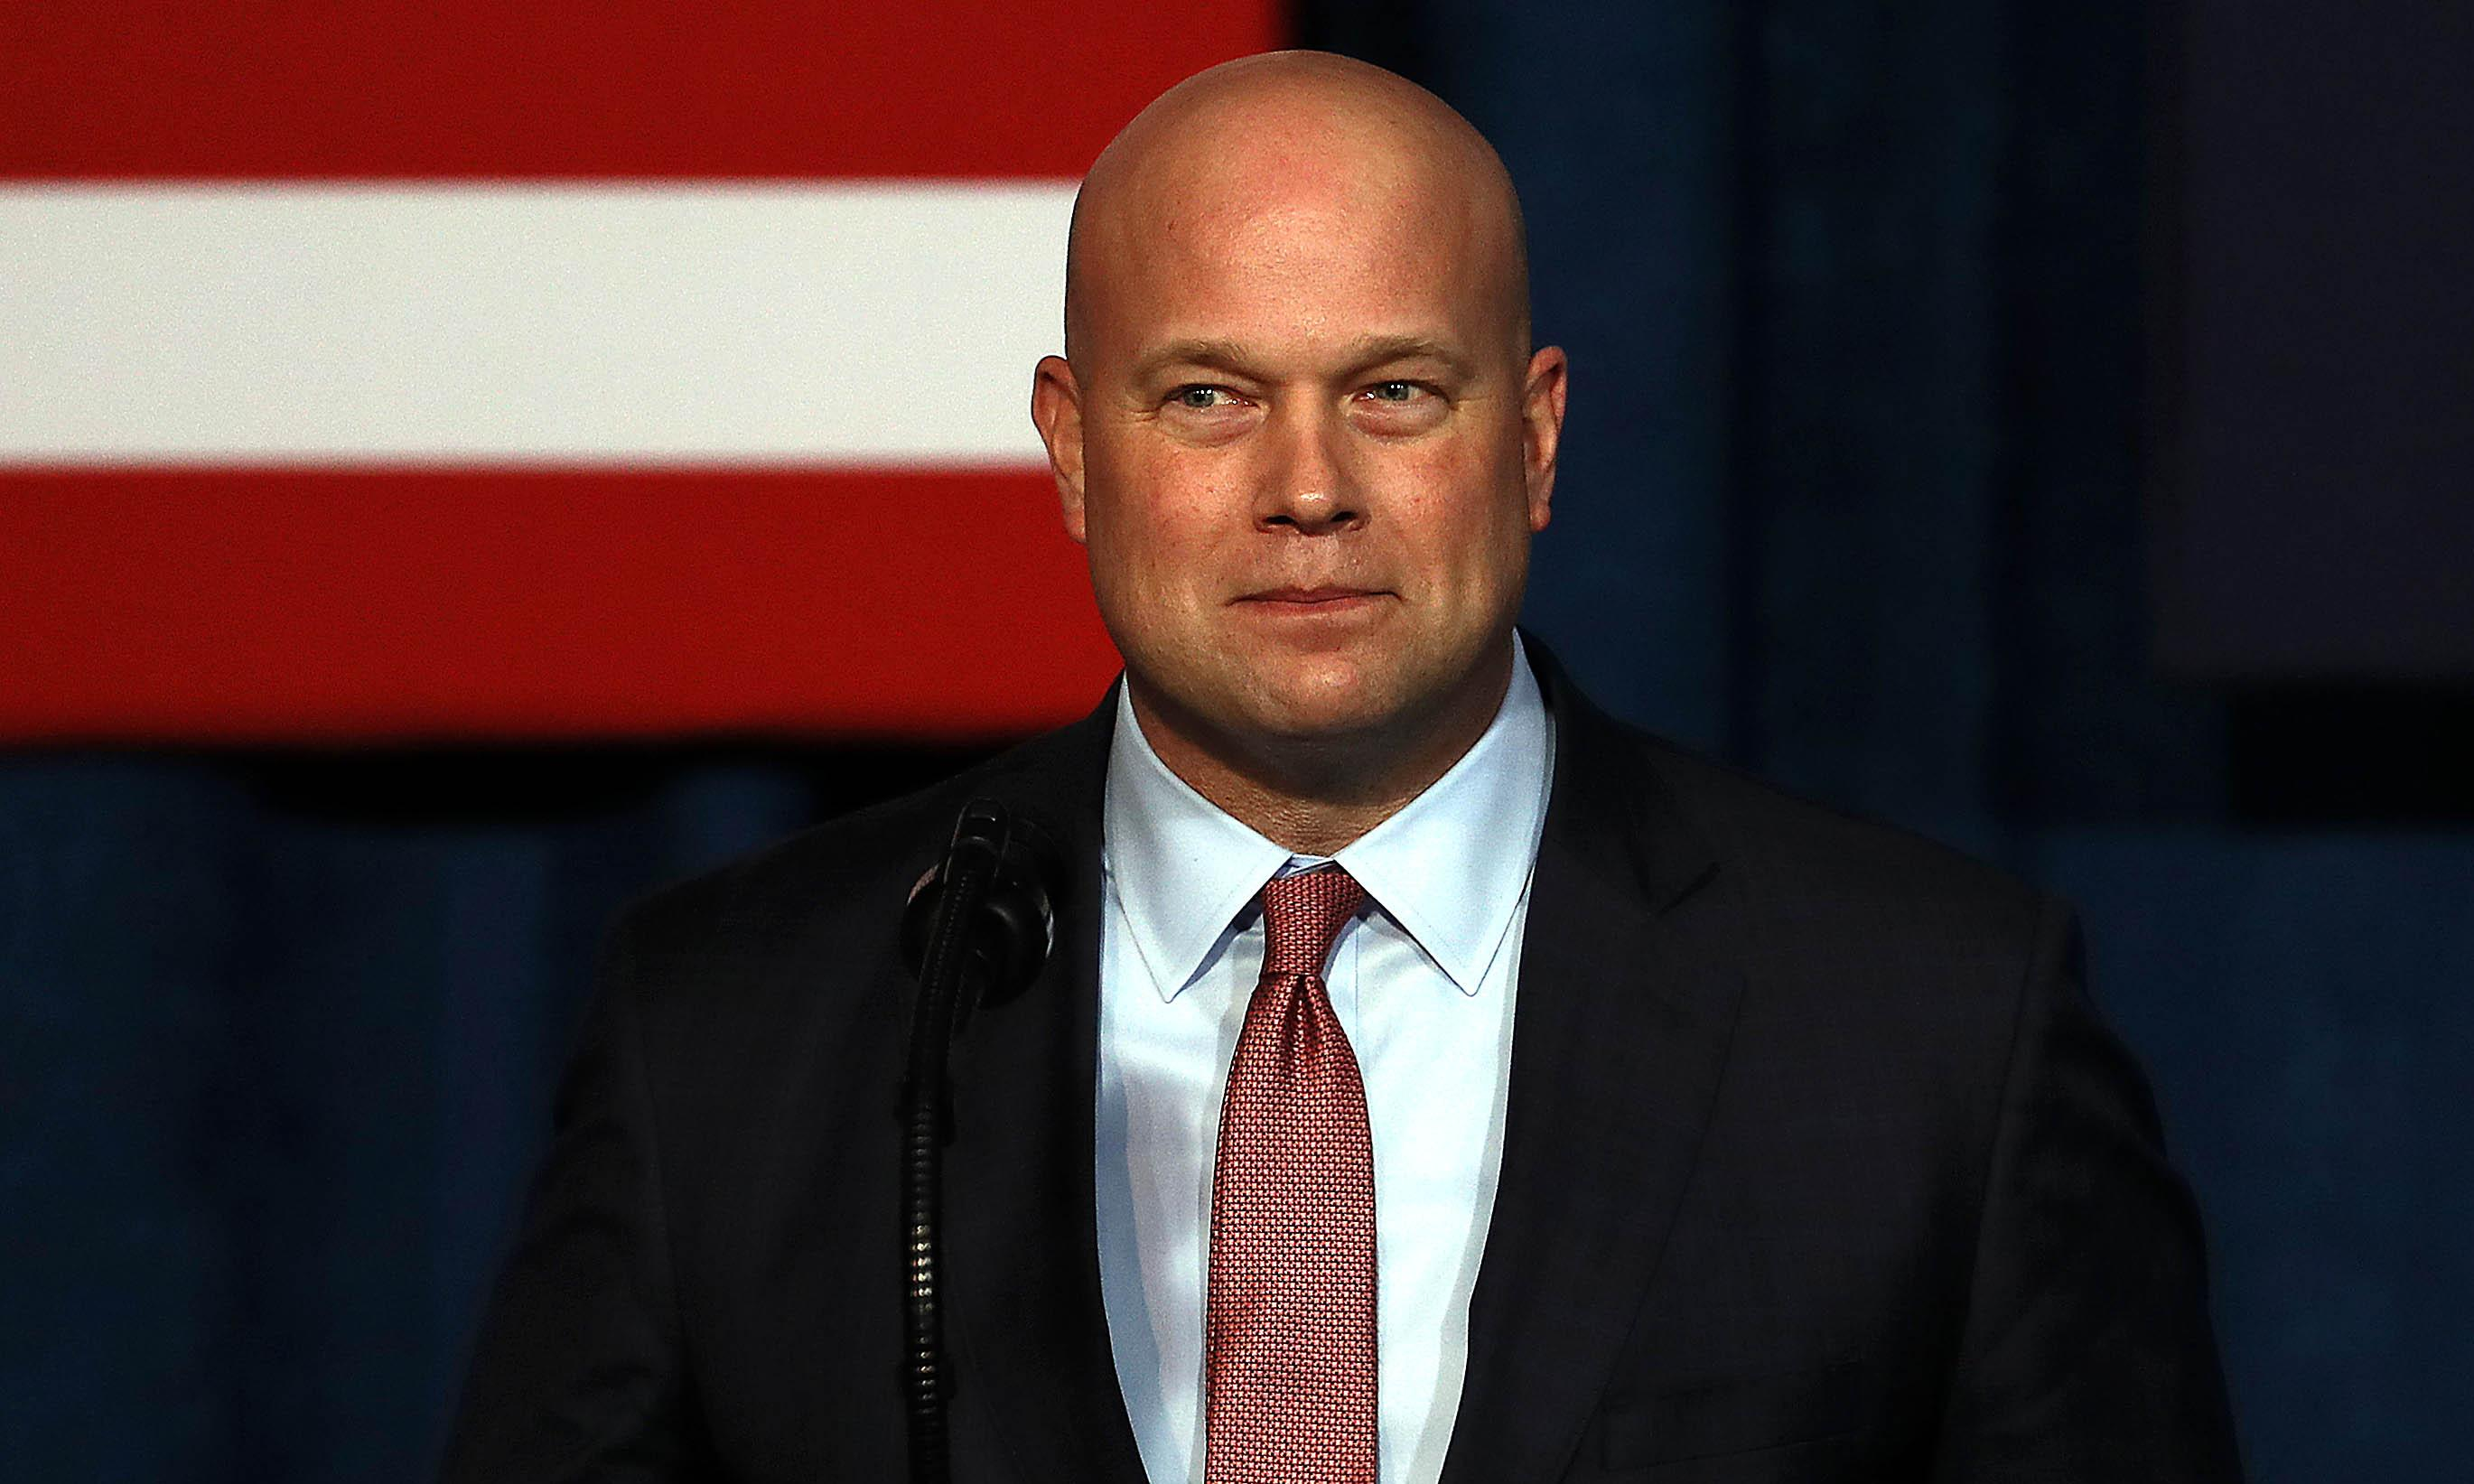 Iowa considers ethics complaint against Trump's acting attorney general